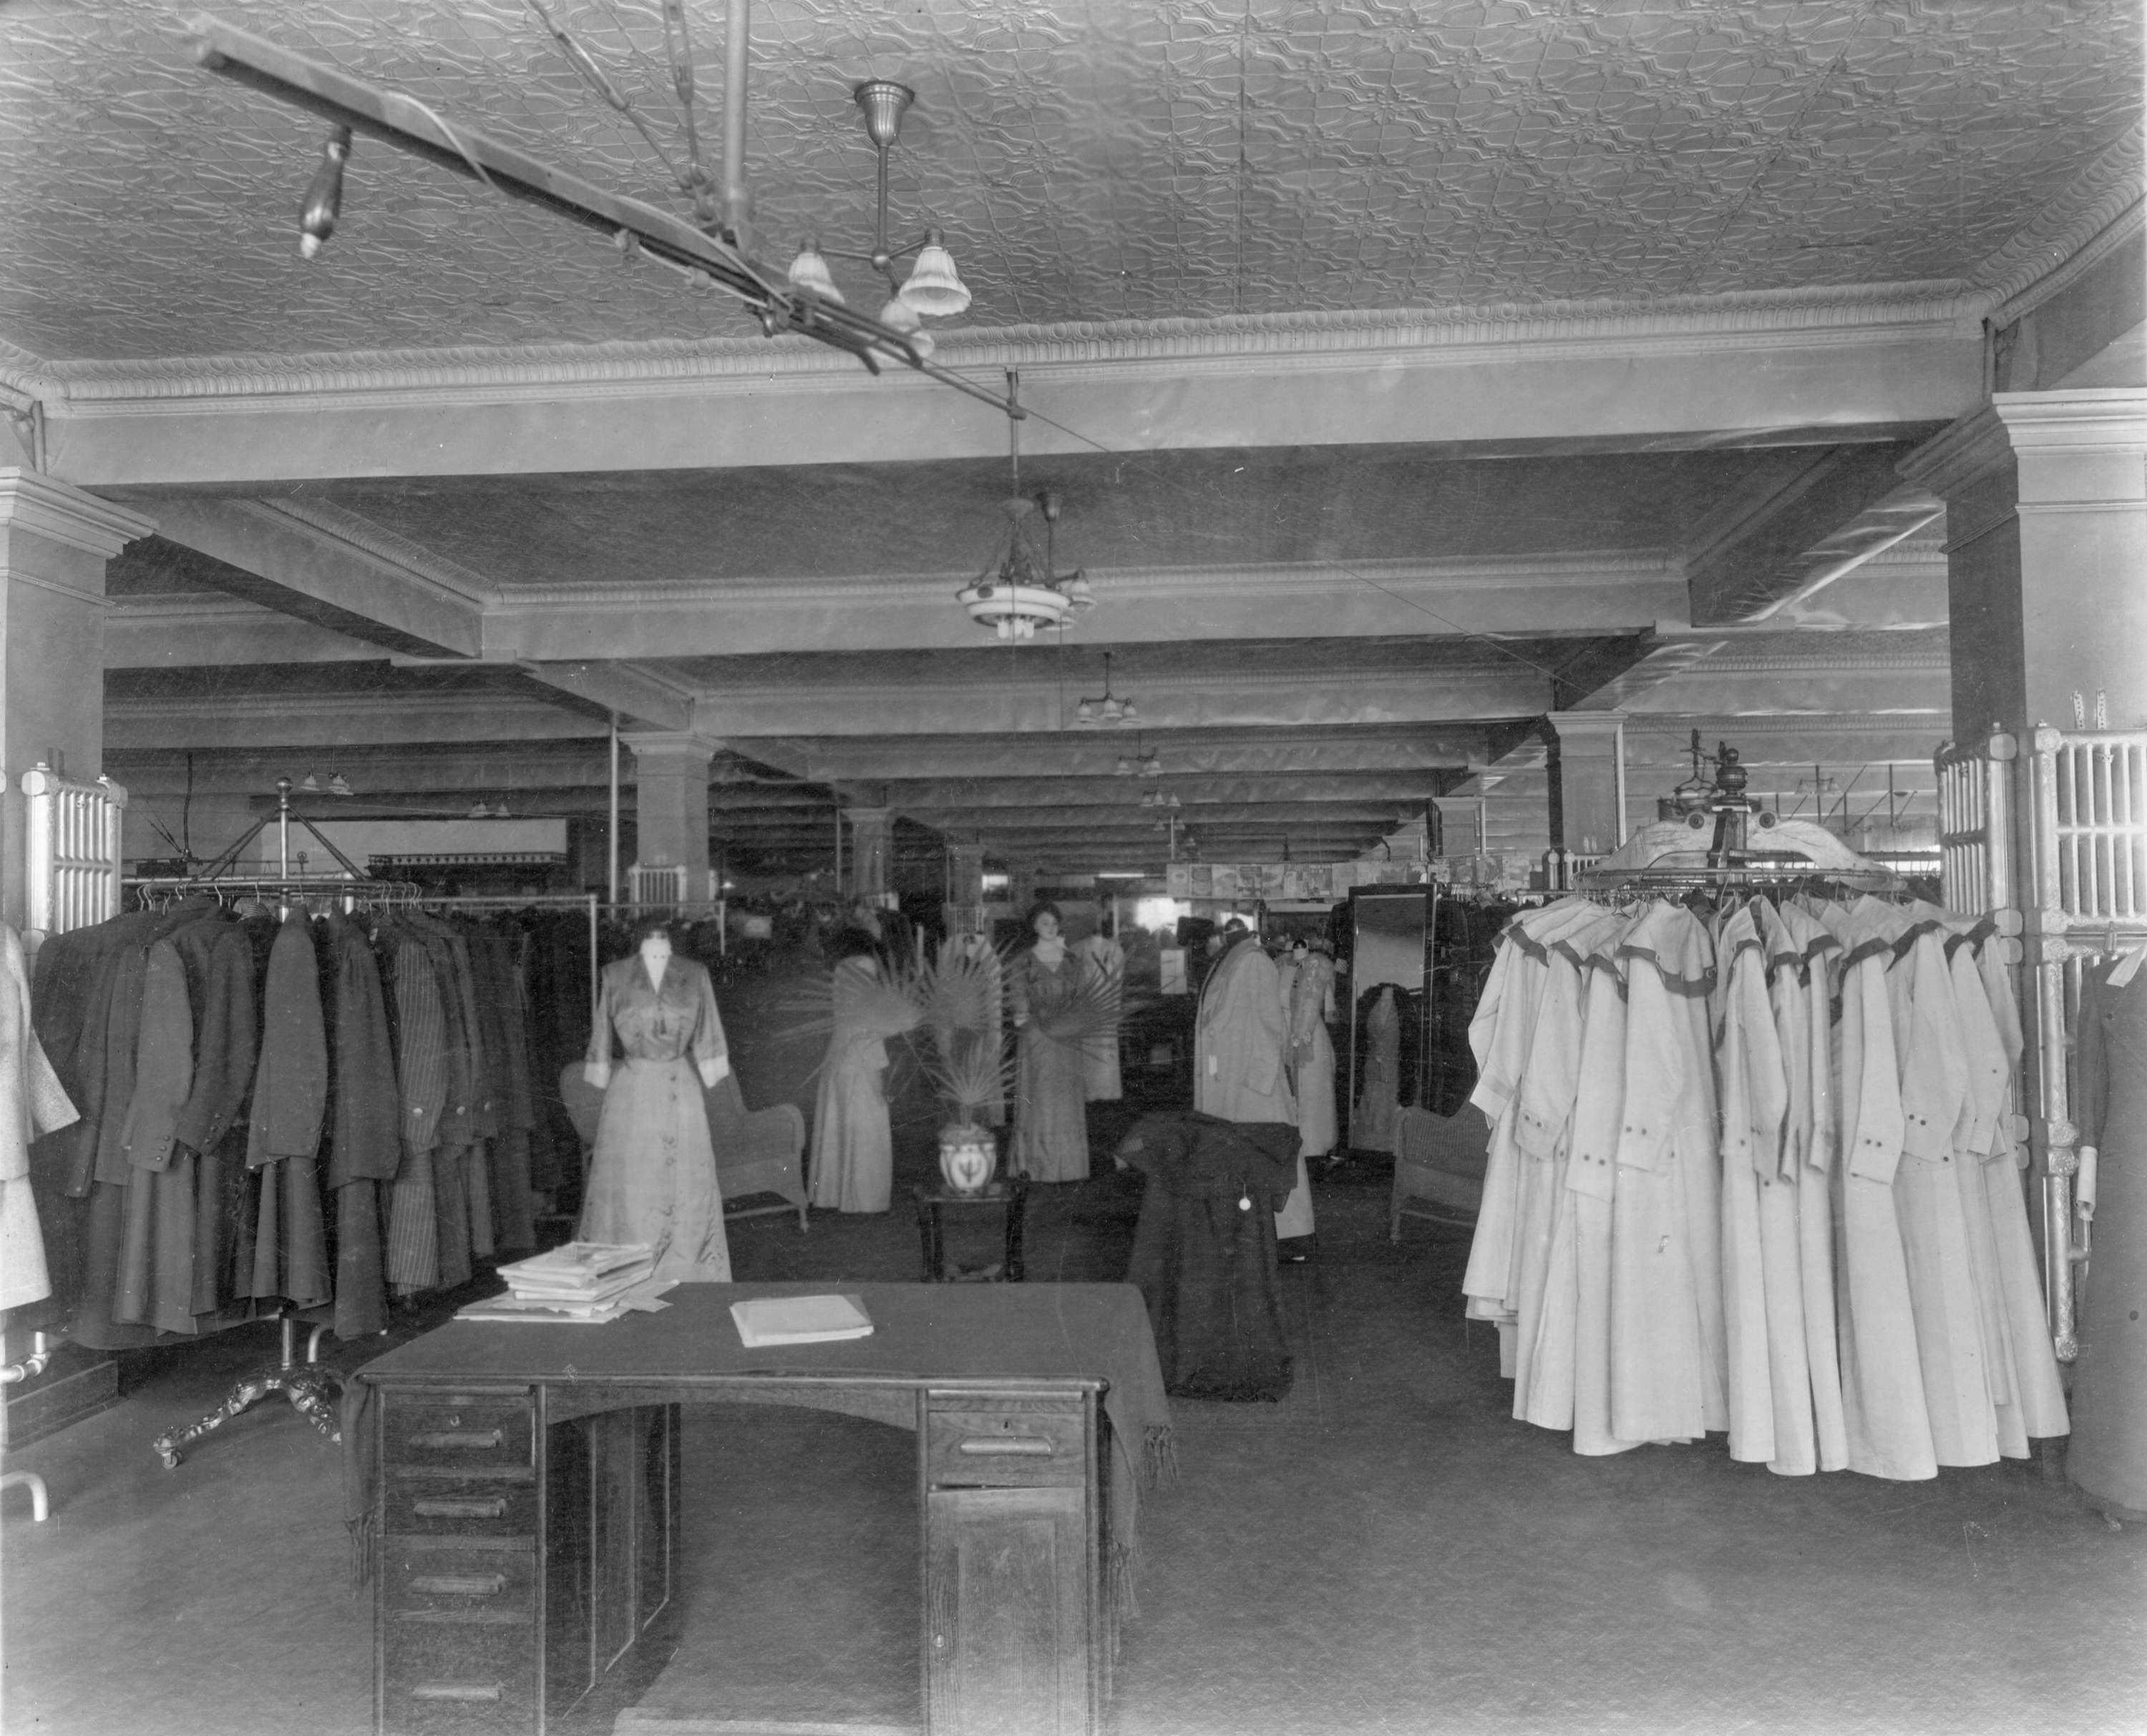 Inside the ladies department at Woodward's Department Store in 1910 (Woodward's Stores Limited)